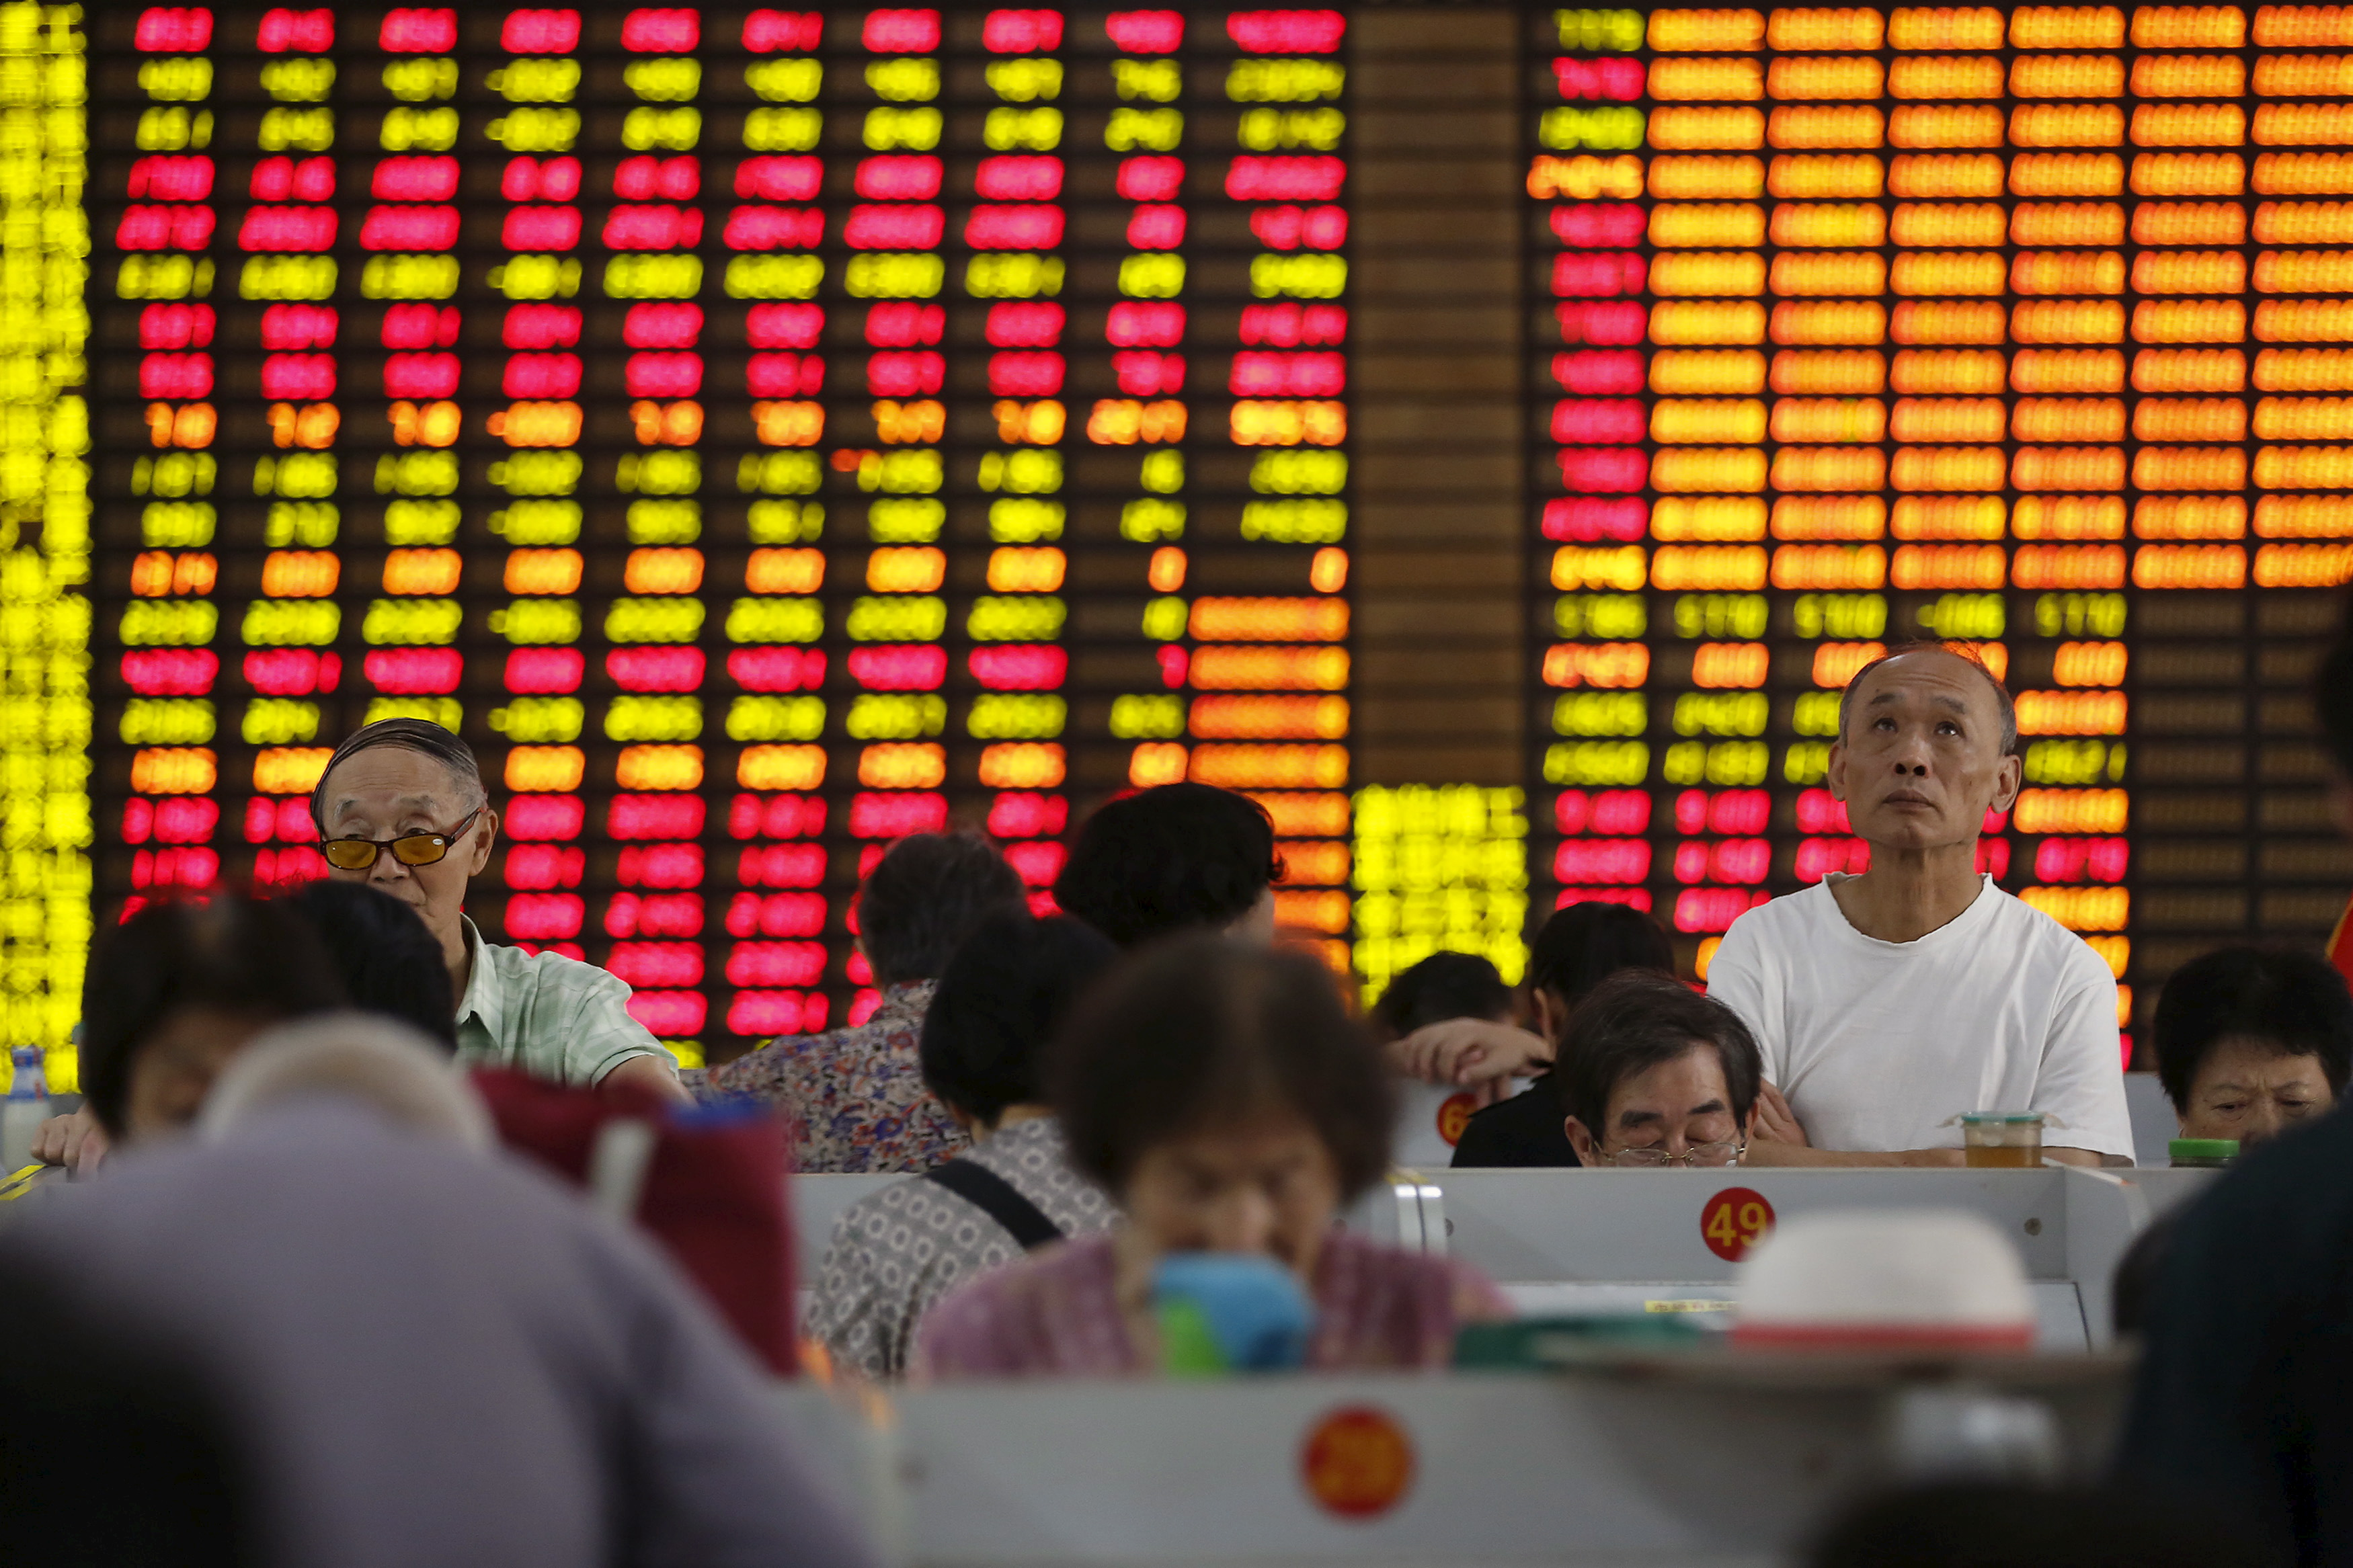 Investors look at computer screens showing stock information at a brokerage in Shanghai, China, August 13, 2015. REUTERS/Aly Song